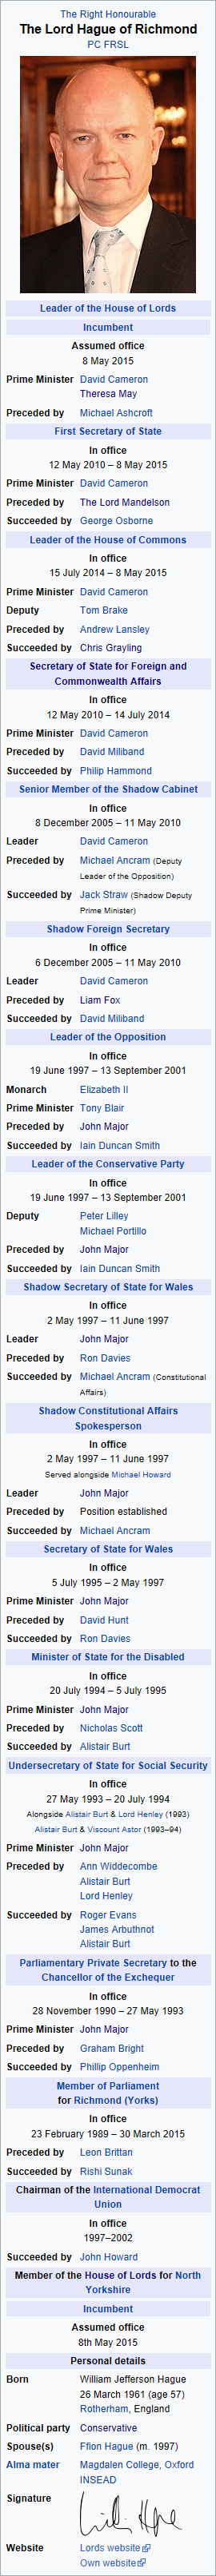 Lord William Hague infobox.png